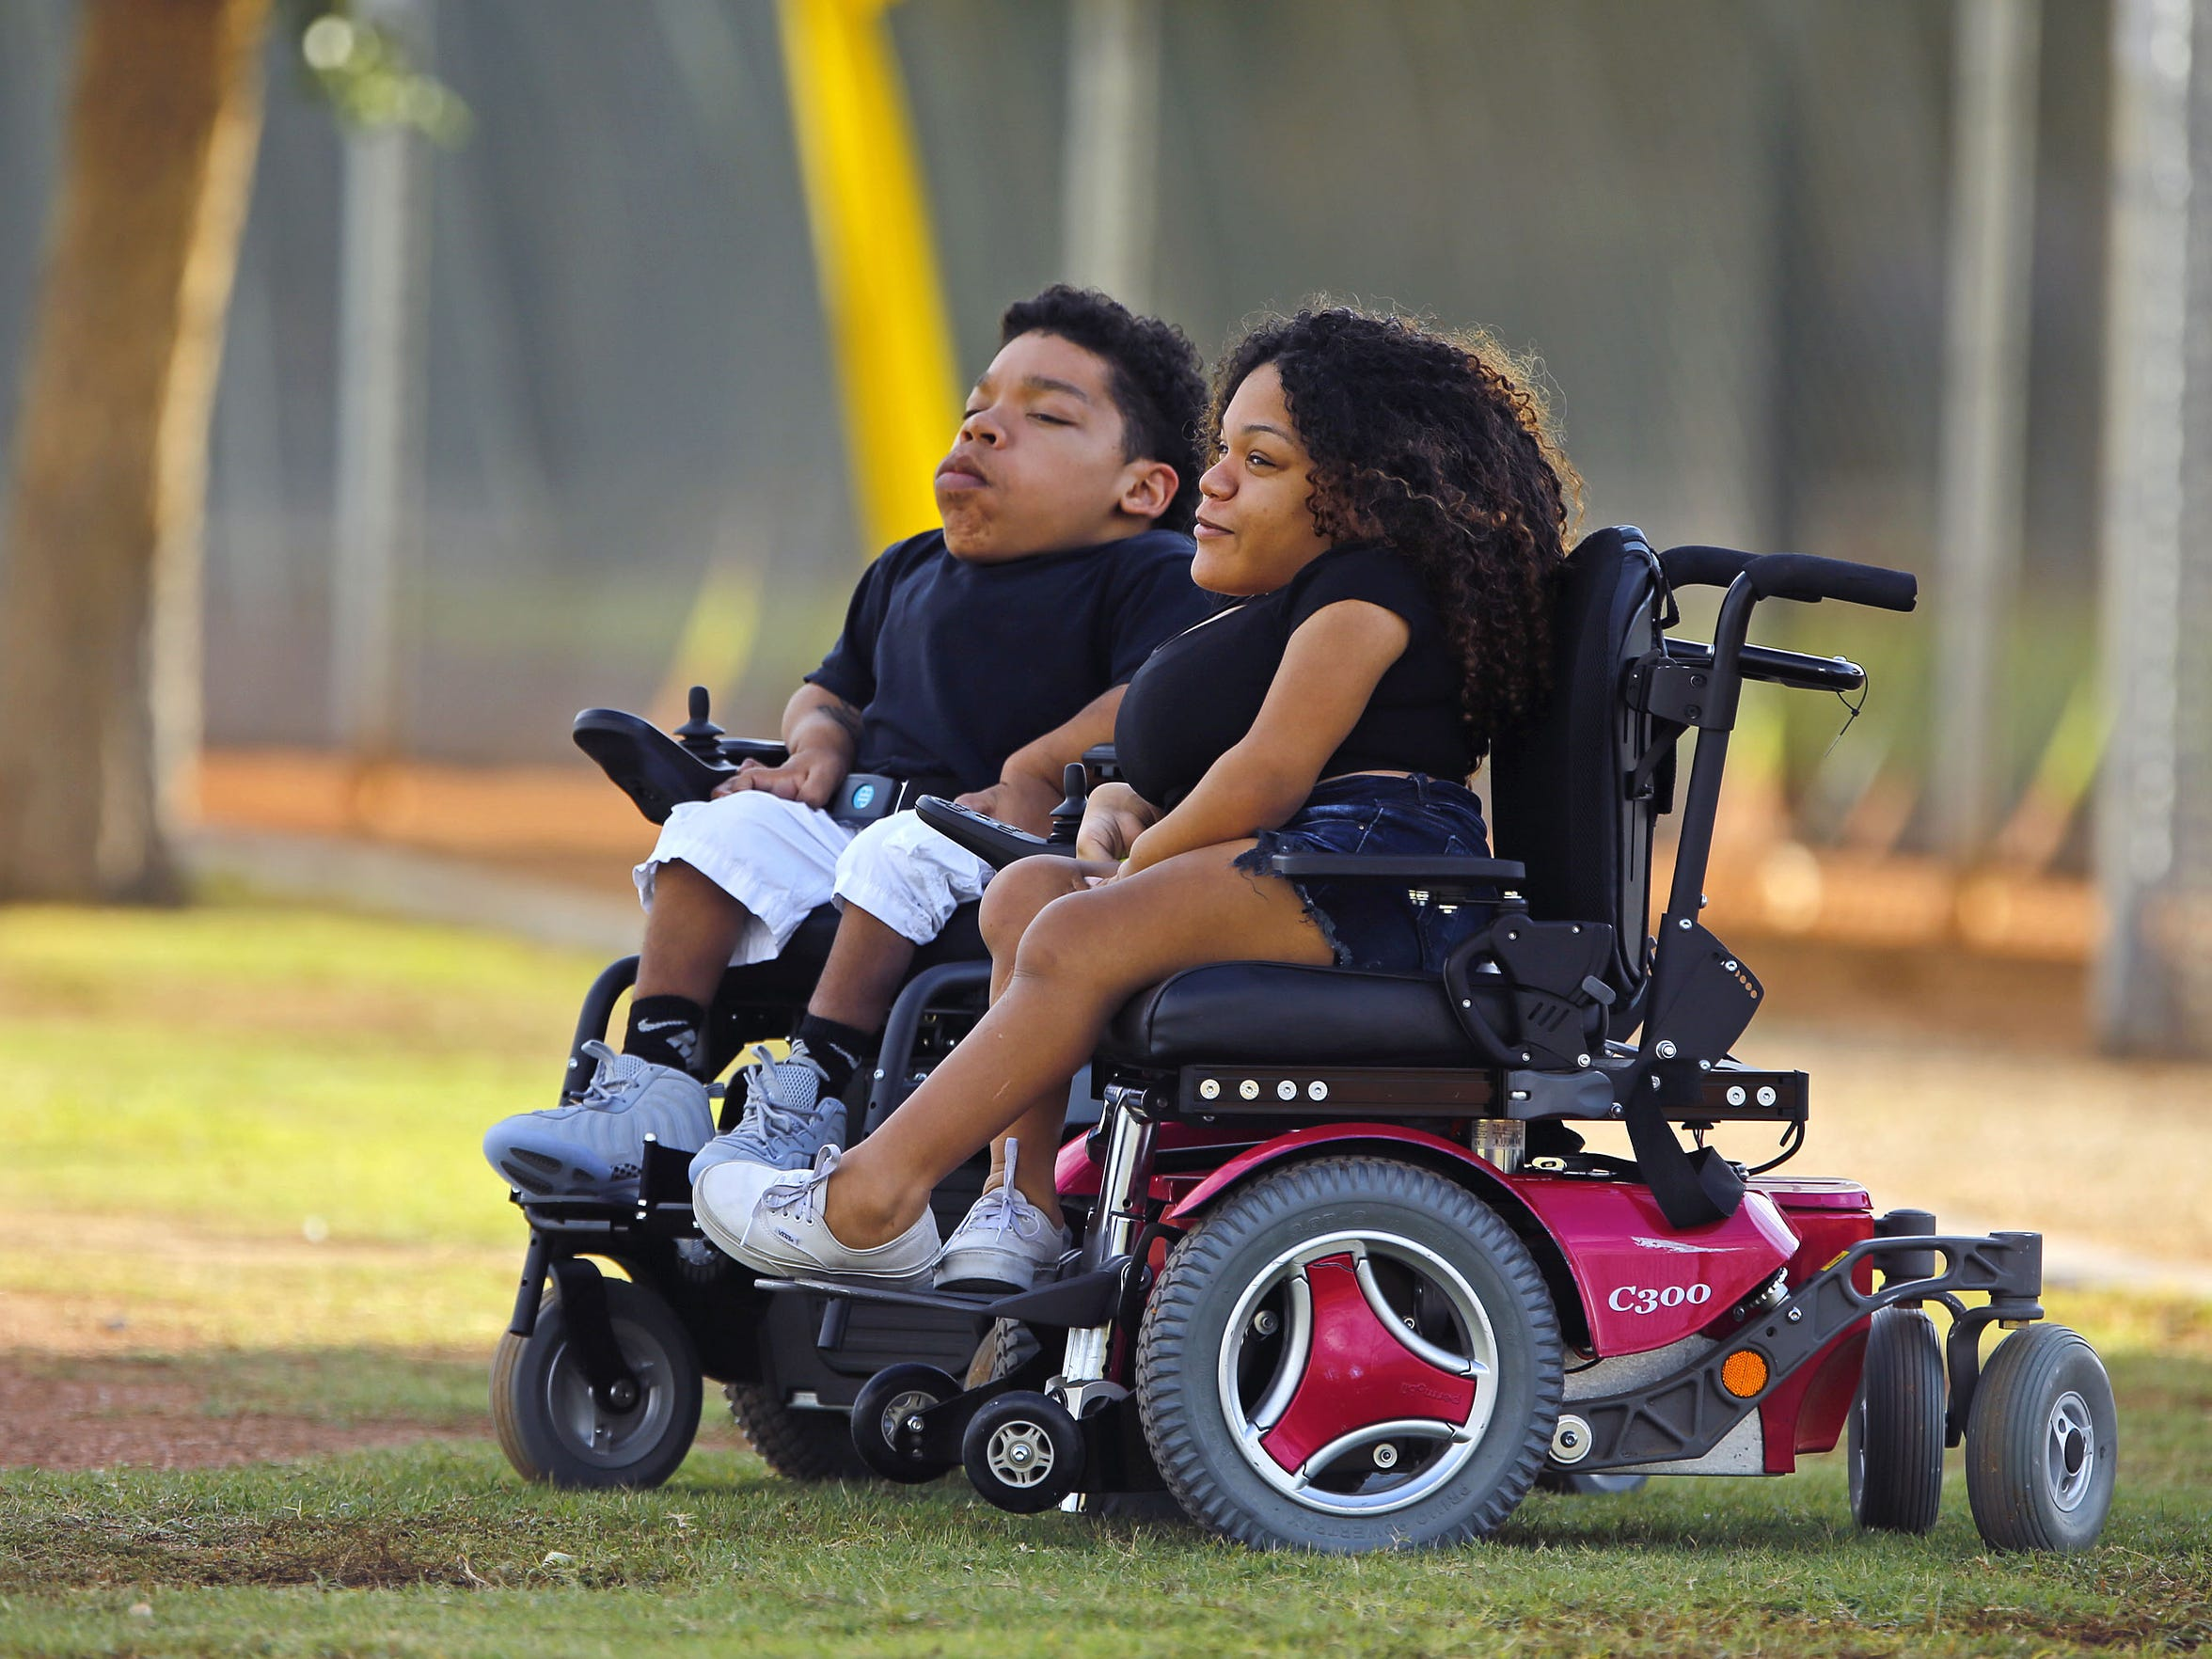 Justin and Kianna White watch their cousin, Saguaro High football player Byron Murphy, during practice on Wednesday, Oct. 21, 2015 in Scottsdale, Ariz.